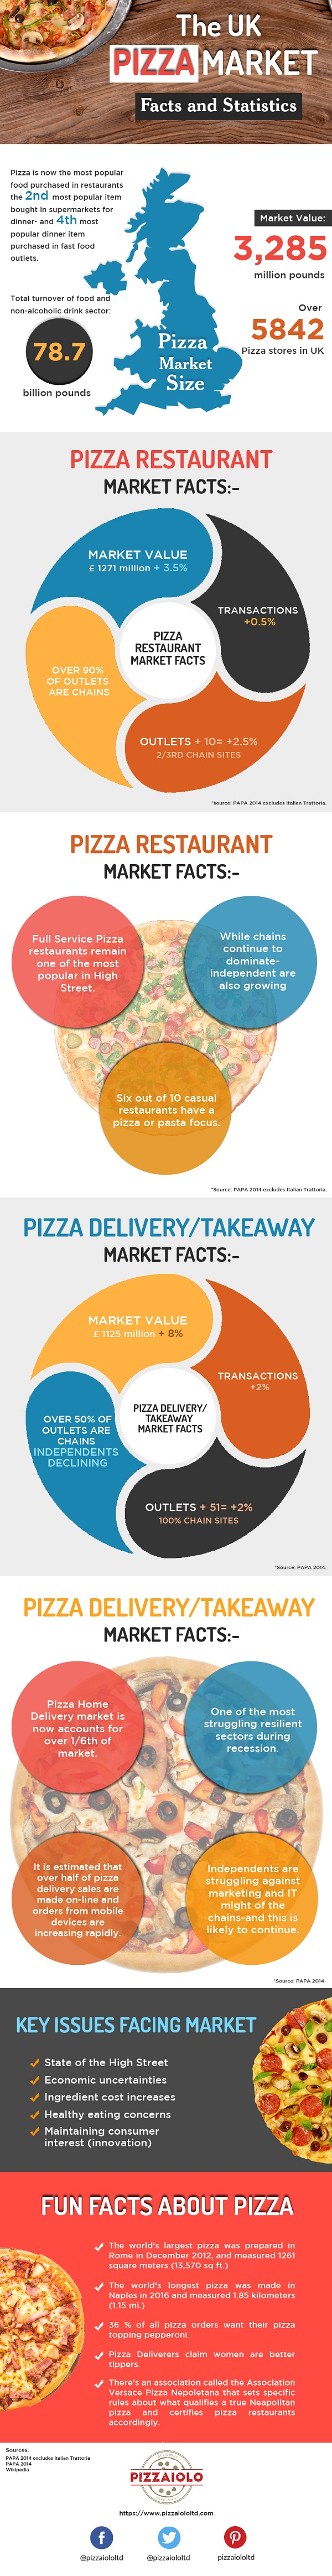 UK Pizza Market- Facts and Statistics